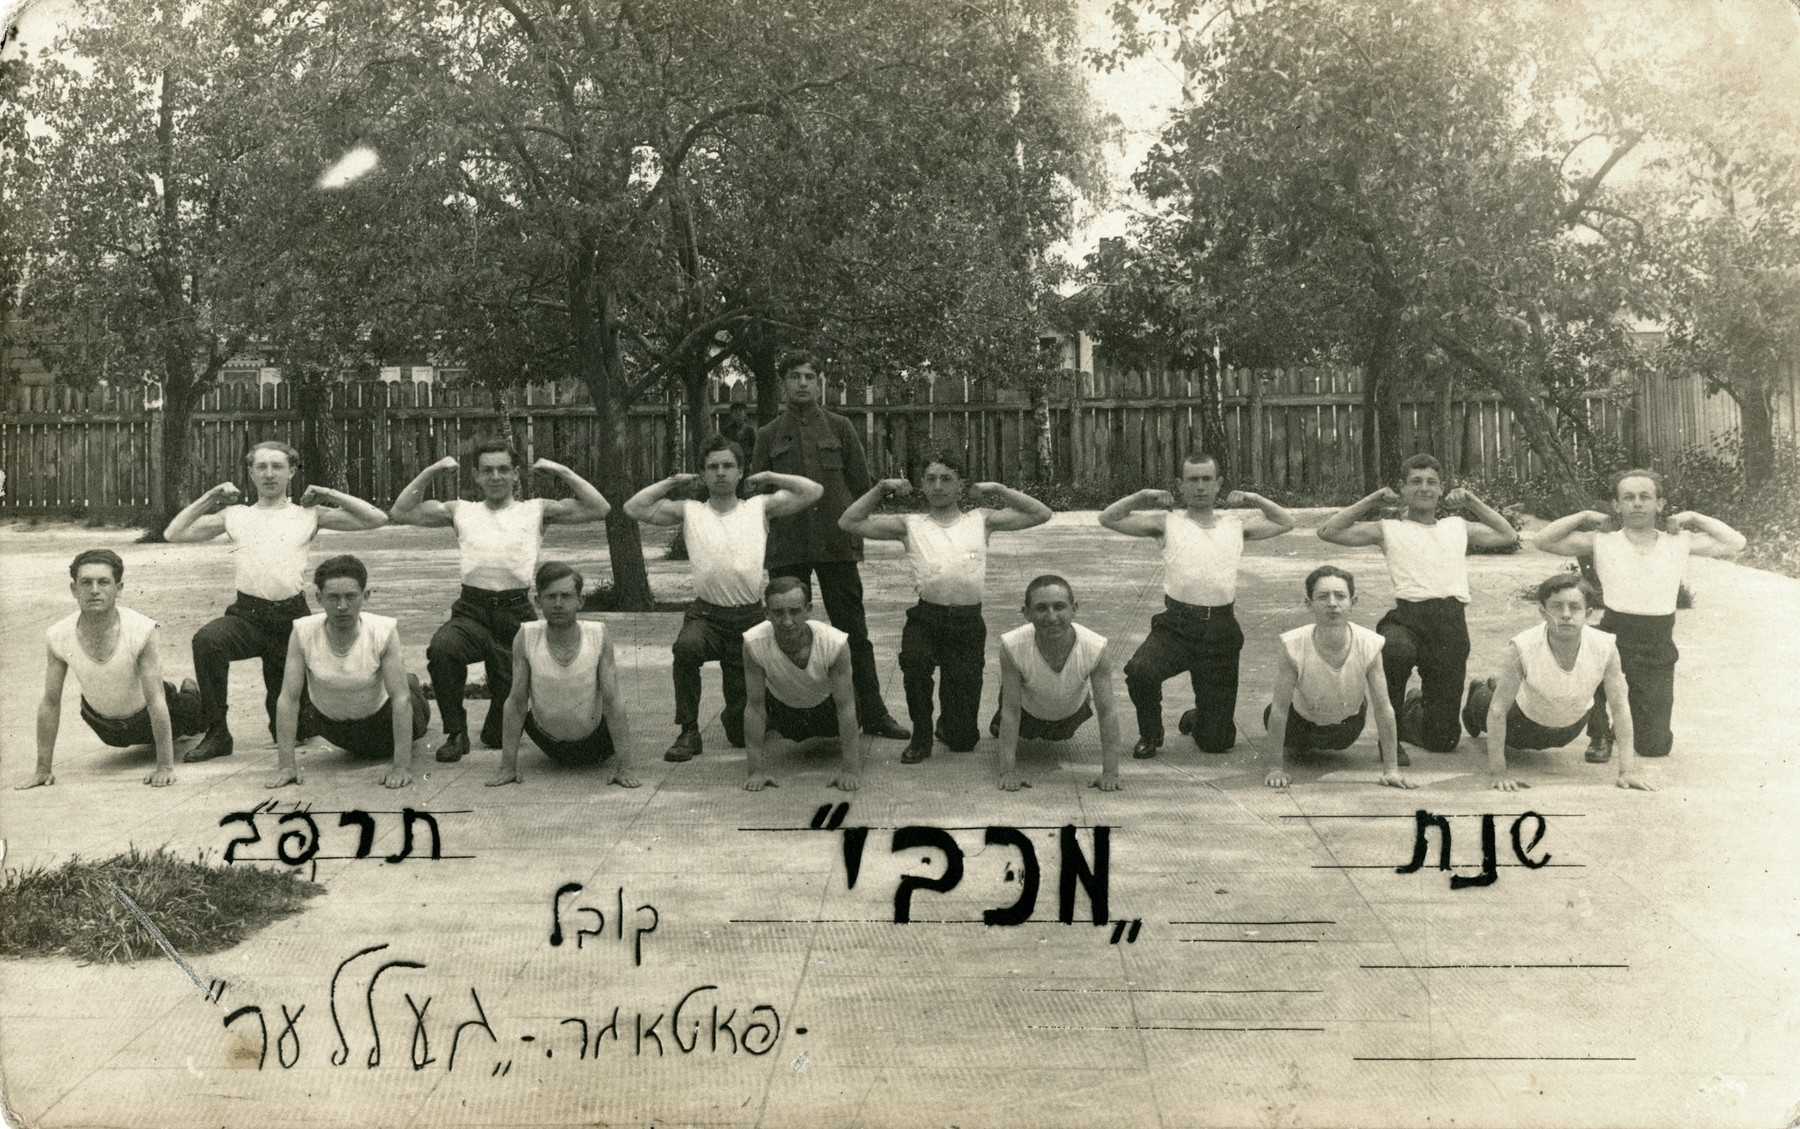 Group portrait of the Maccabi gymnastics club in Kowel.  Feivel Frankfowicz is pictured on the far right.